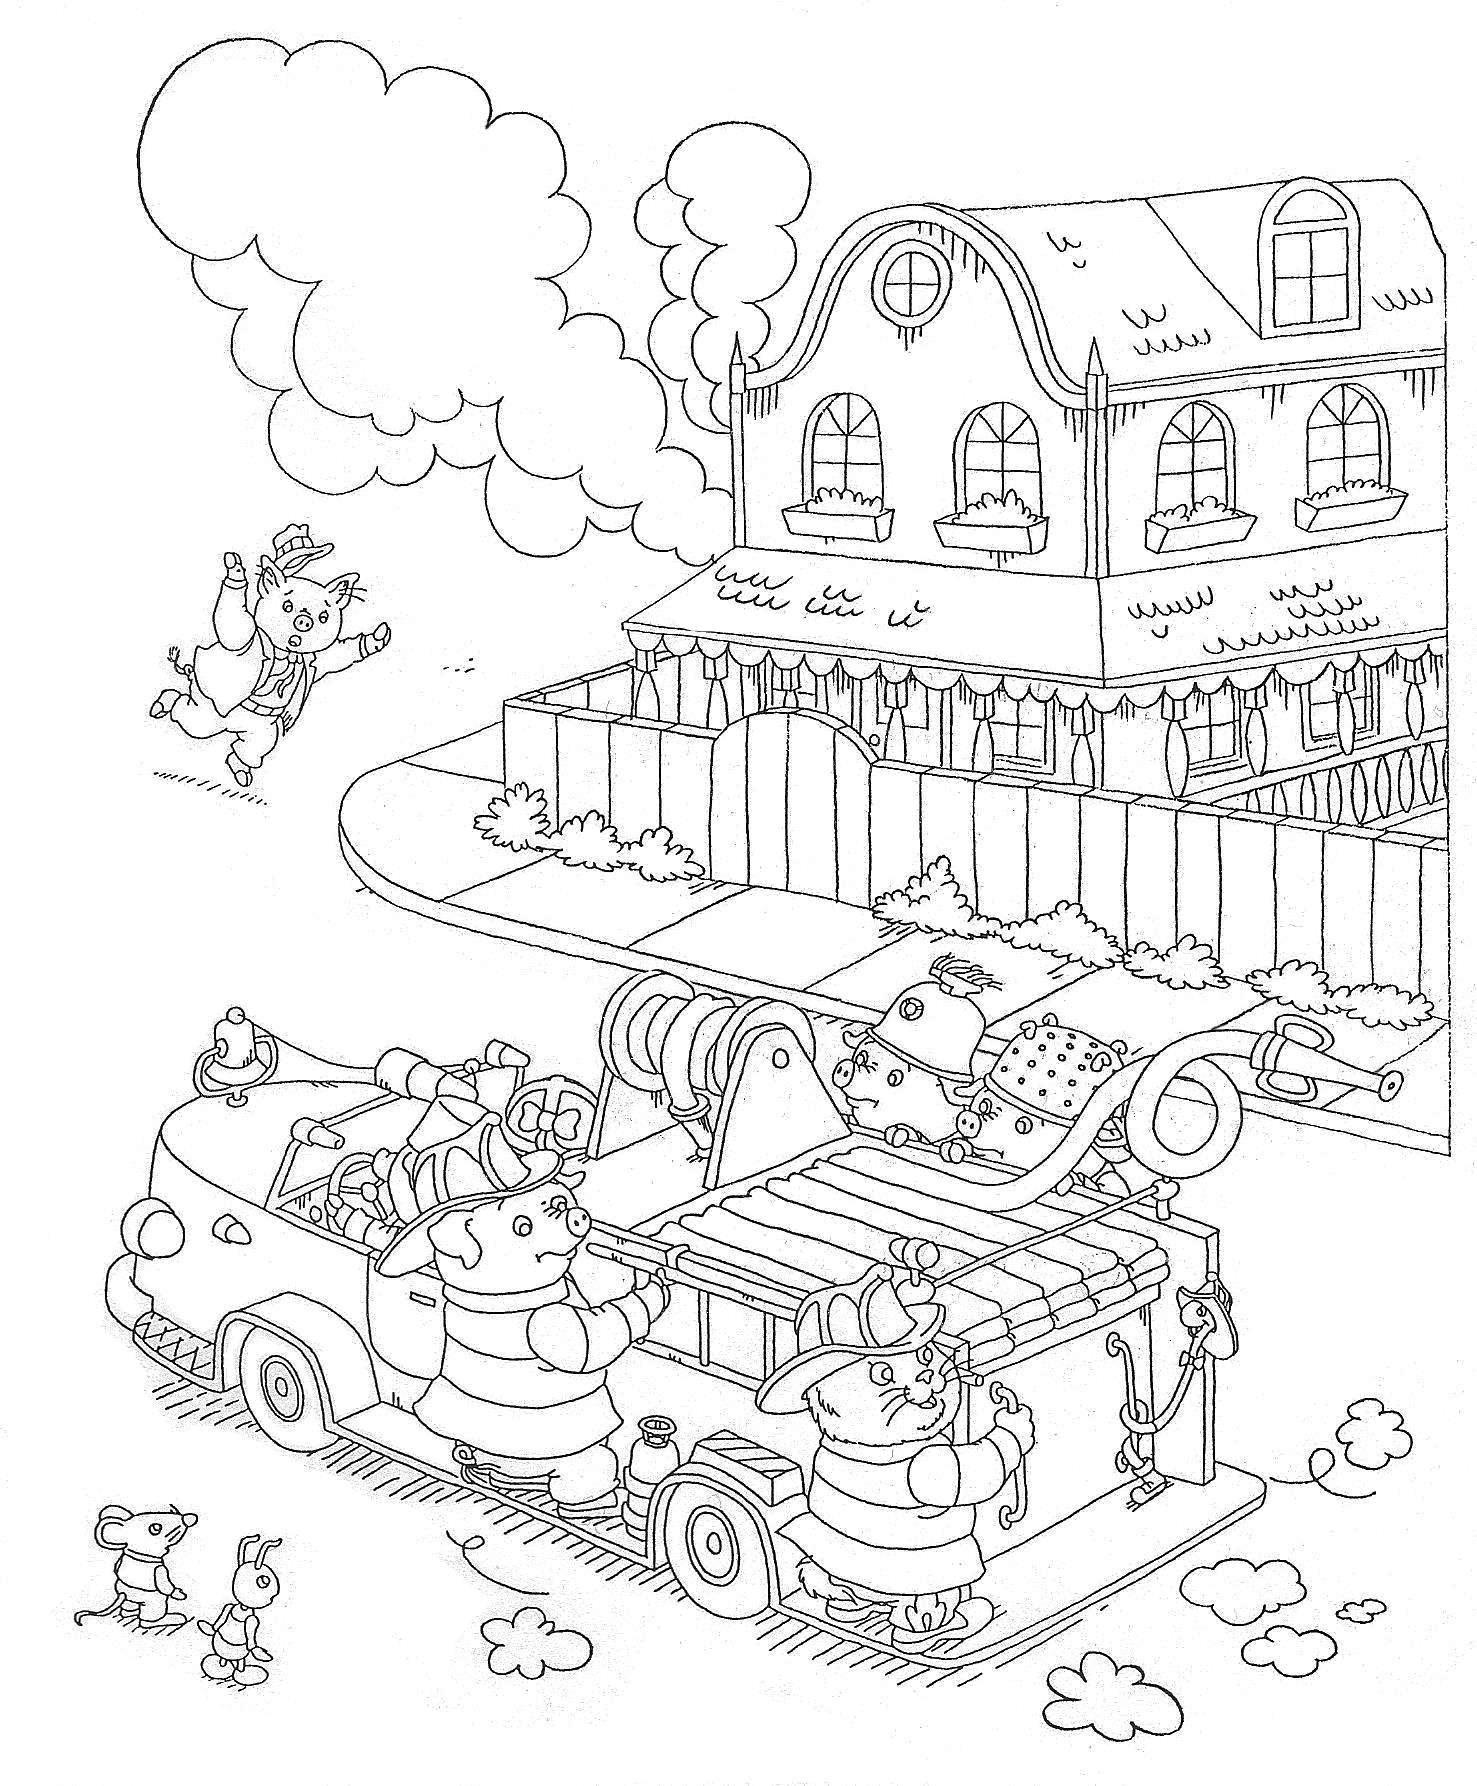 richard scarry preschool coloring pages - photo#6